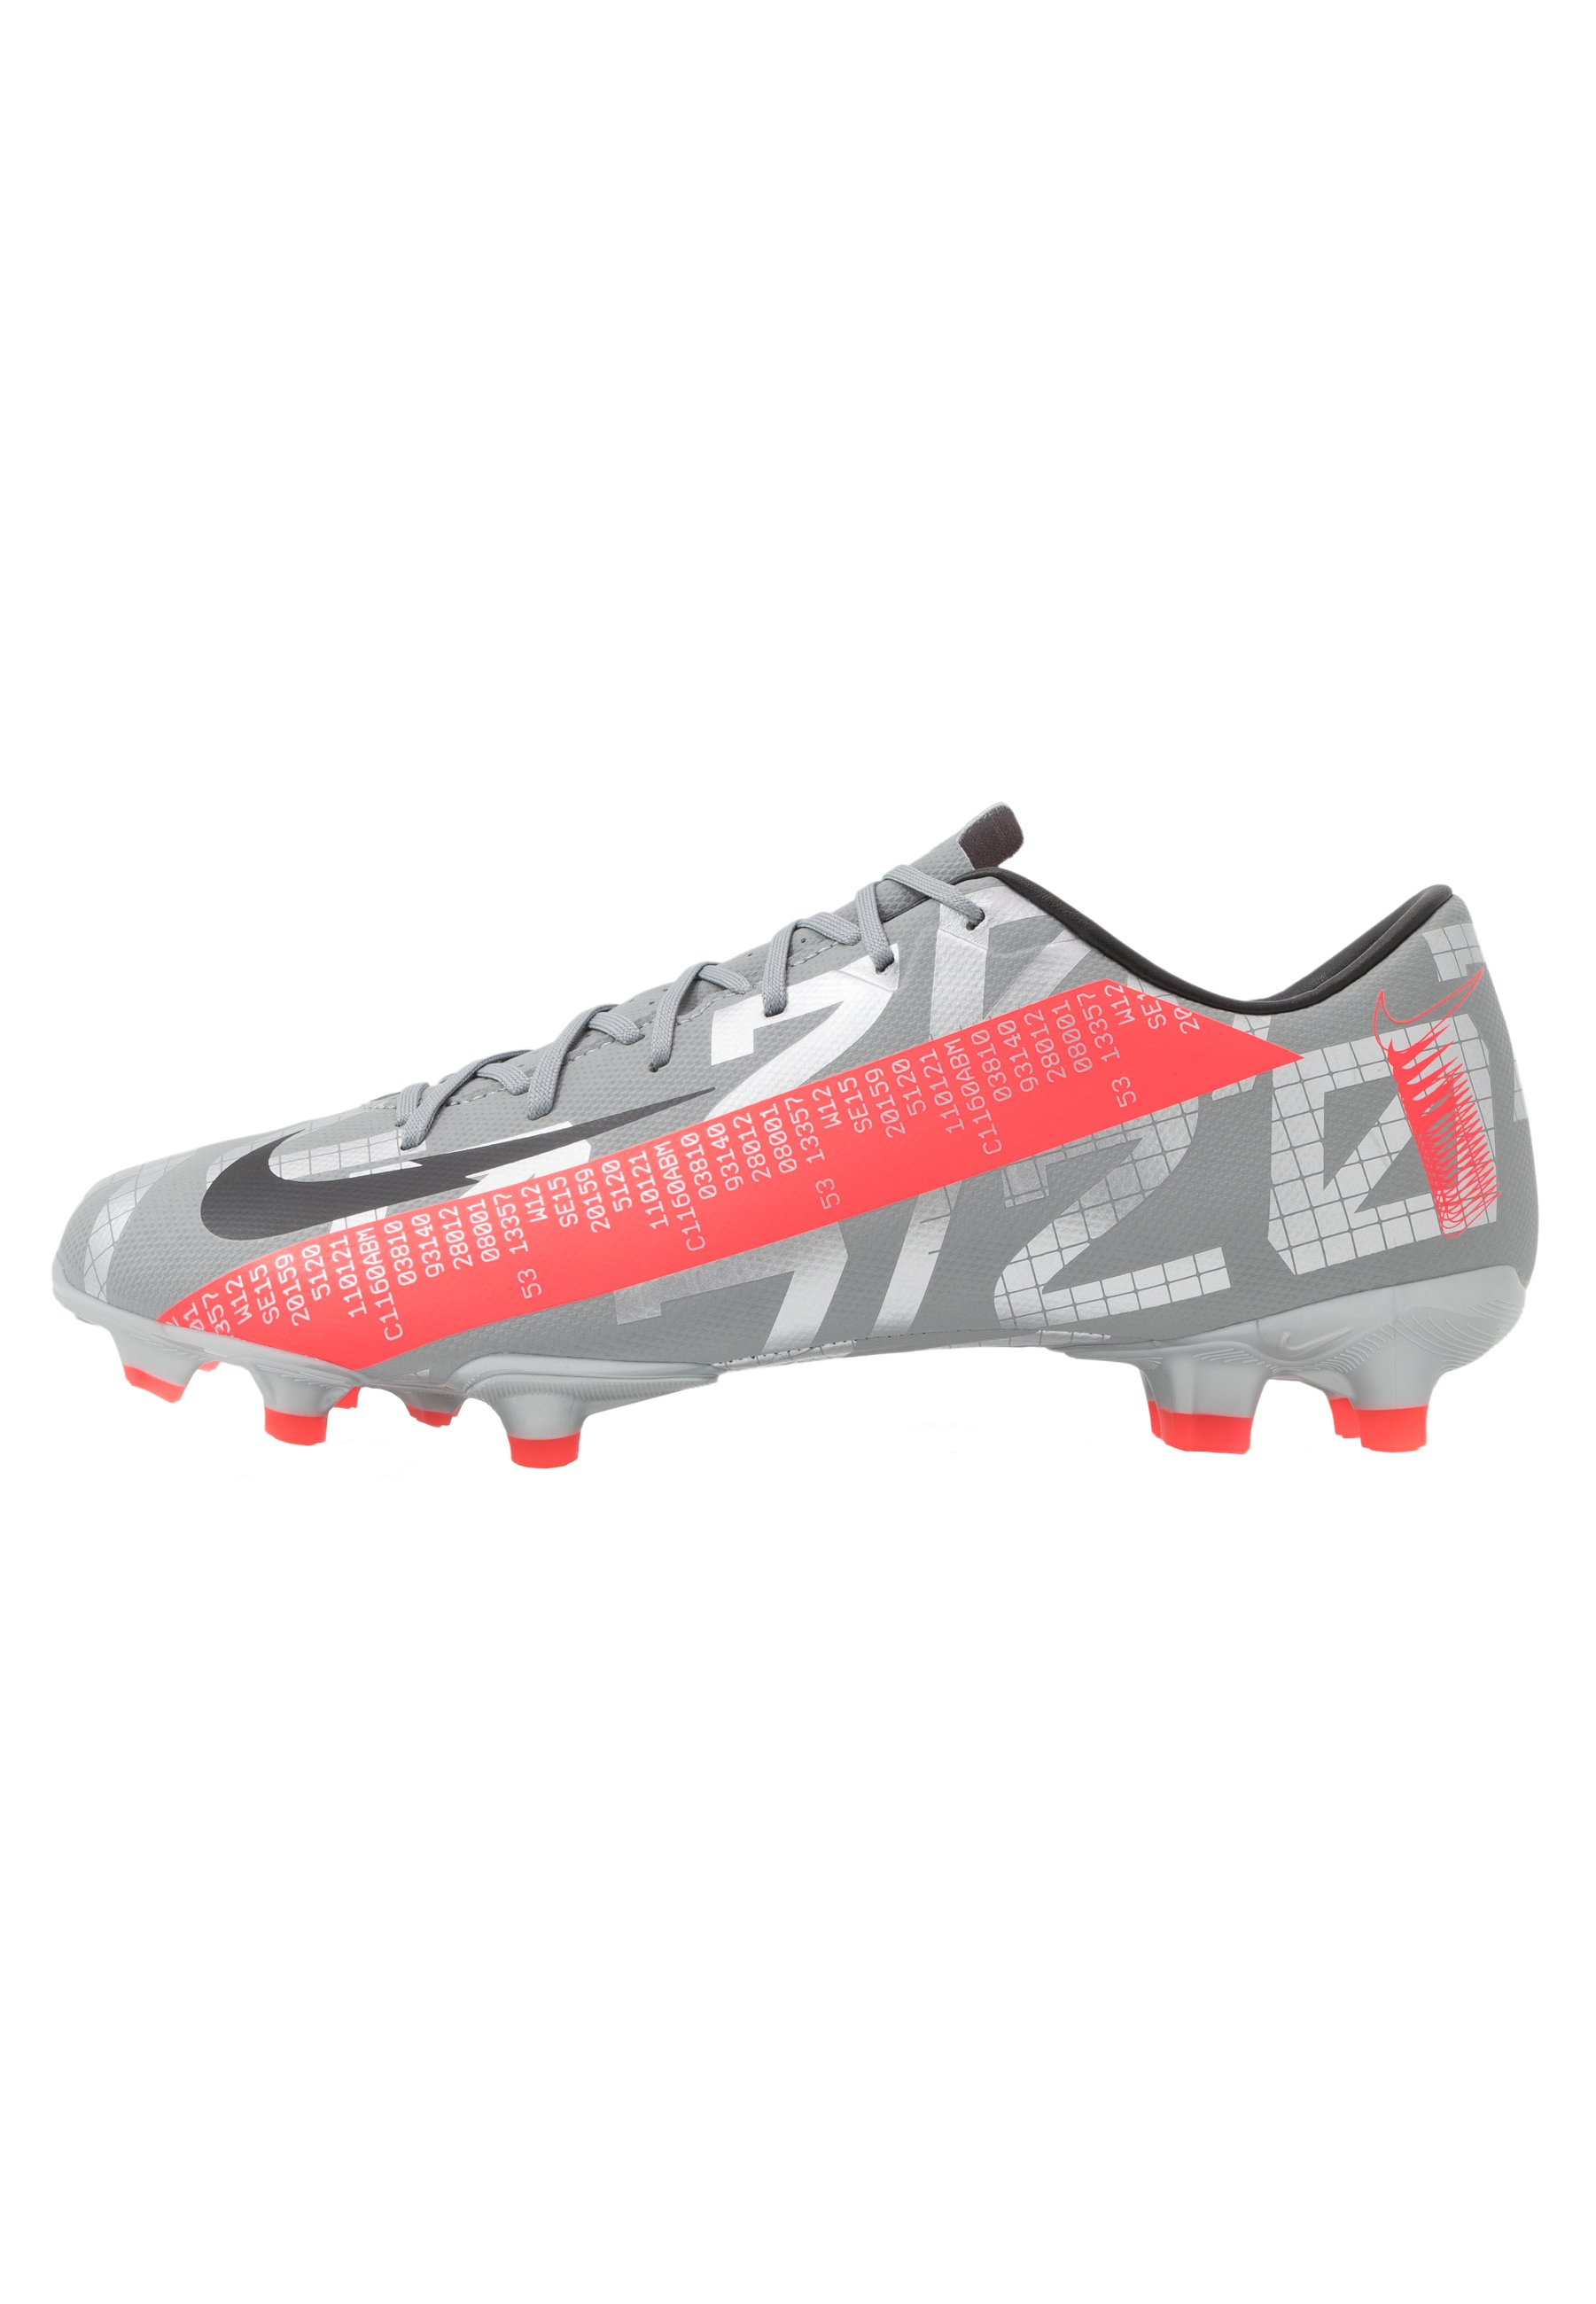 MERCURIAL VAPOR 13 ACADEMY FGMG Chaussures de foot à crampons metallic bomber greyblackparticle grey